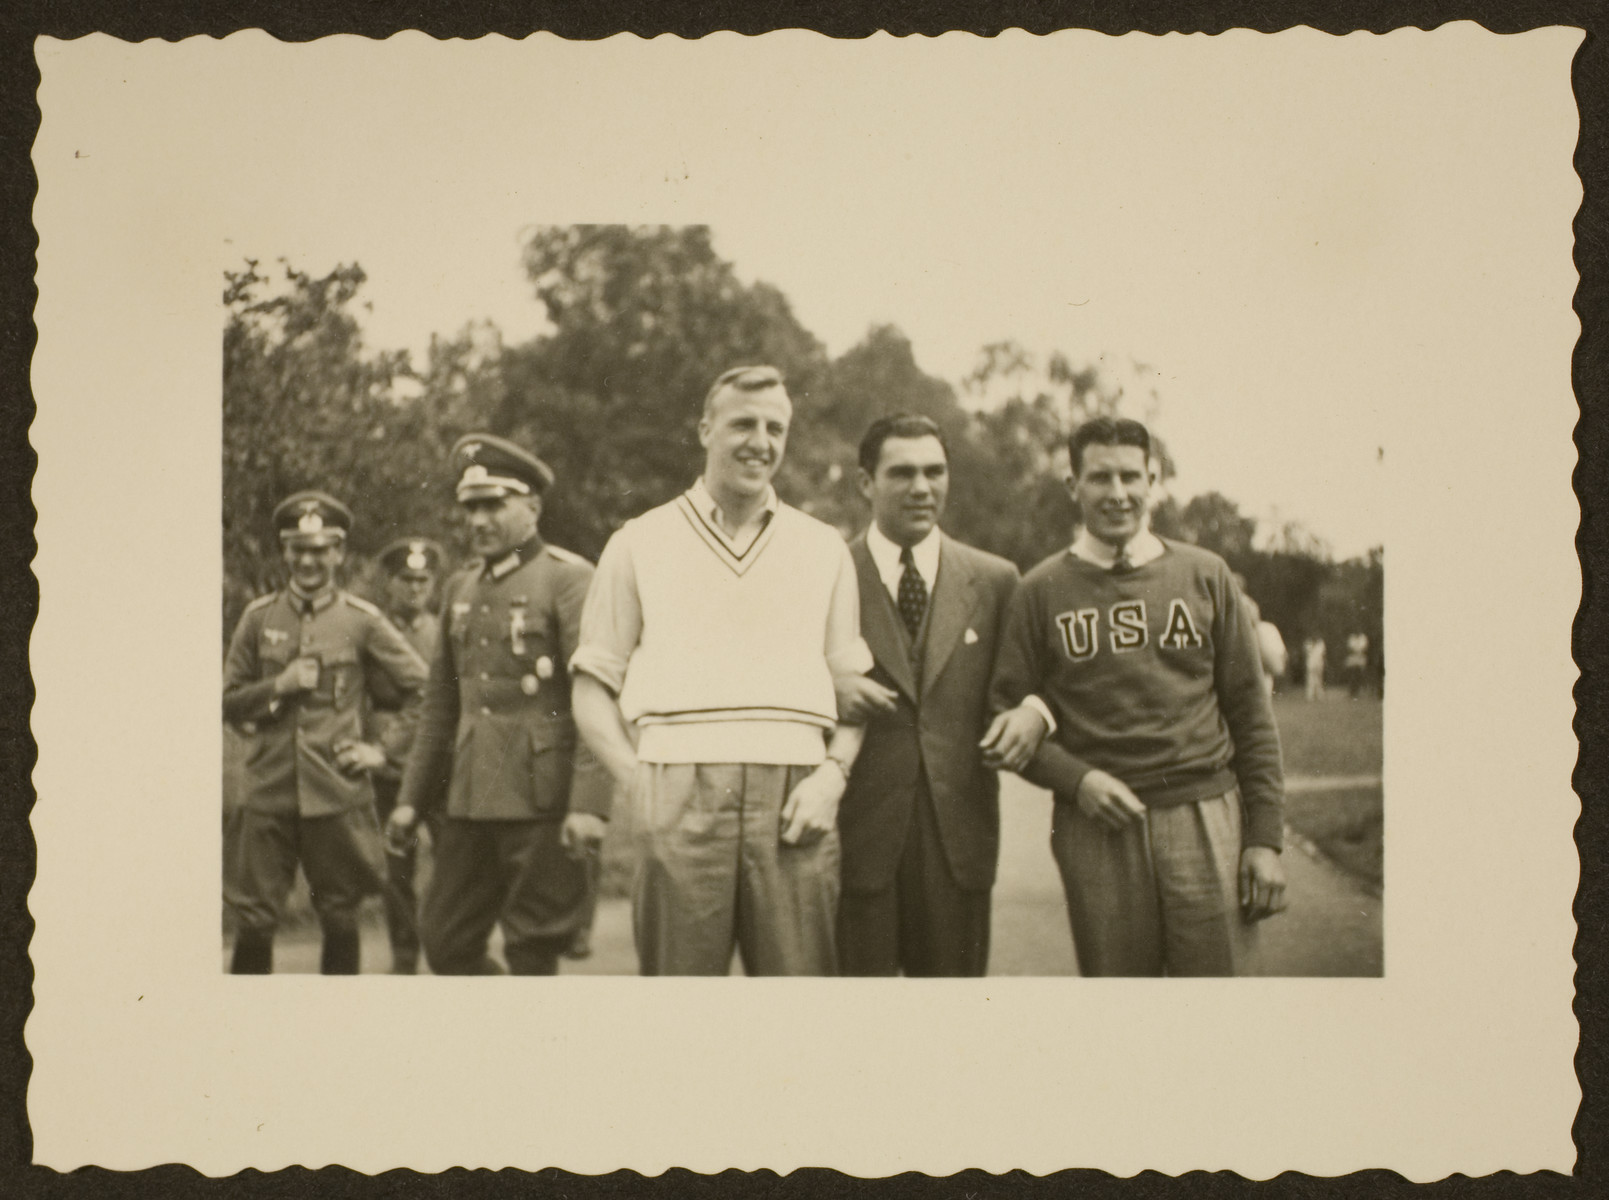 Max Schmeling poses with Glenn Morris, American gold medalist in the decathlon, and another man at the Berlin Olympics.